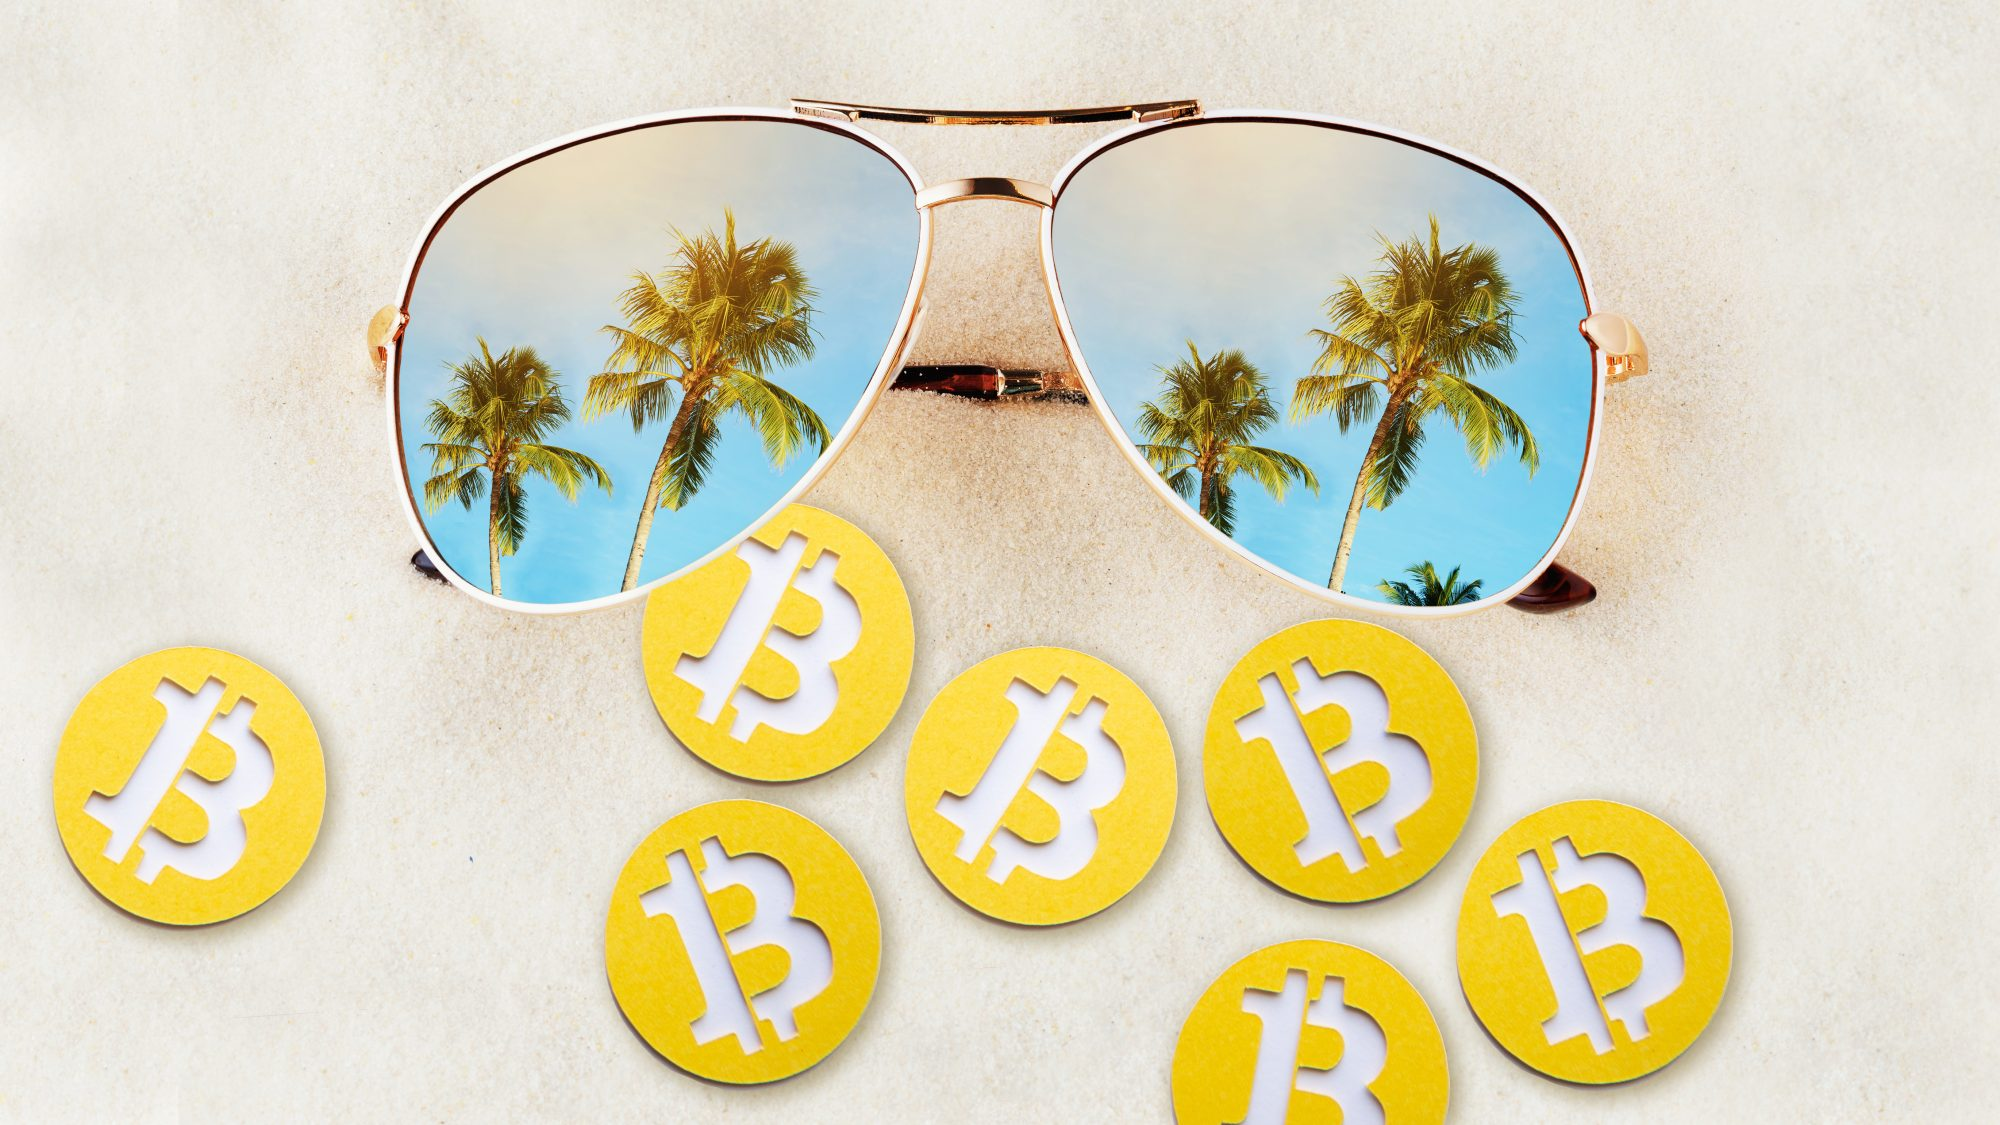 cryptocurrency-travel: sunglasses and Bitcoin